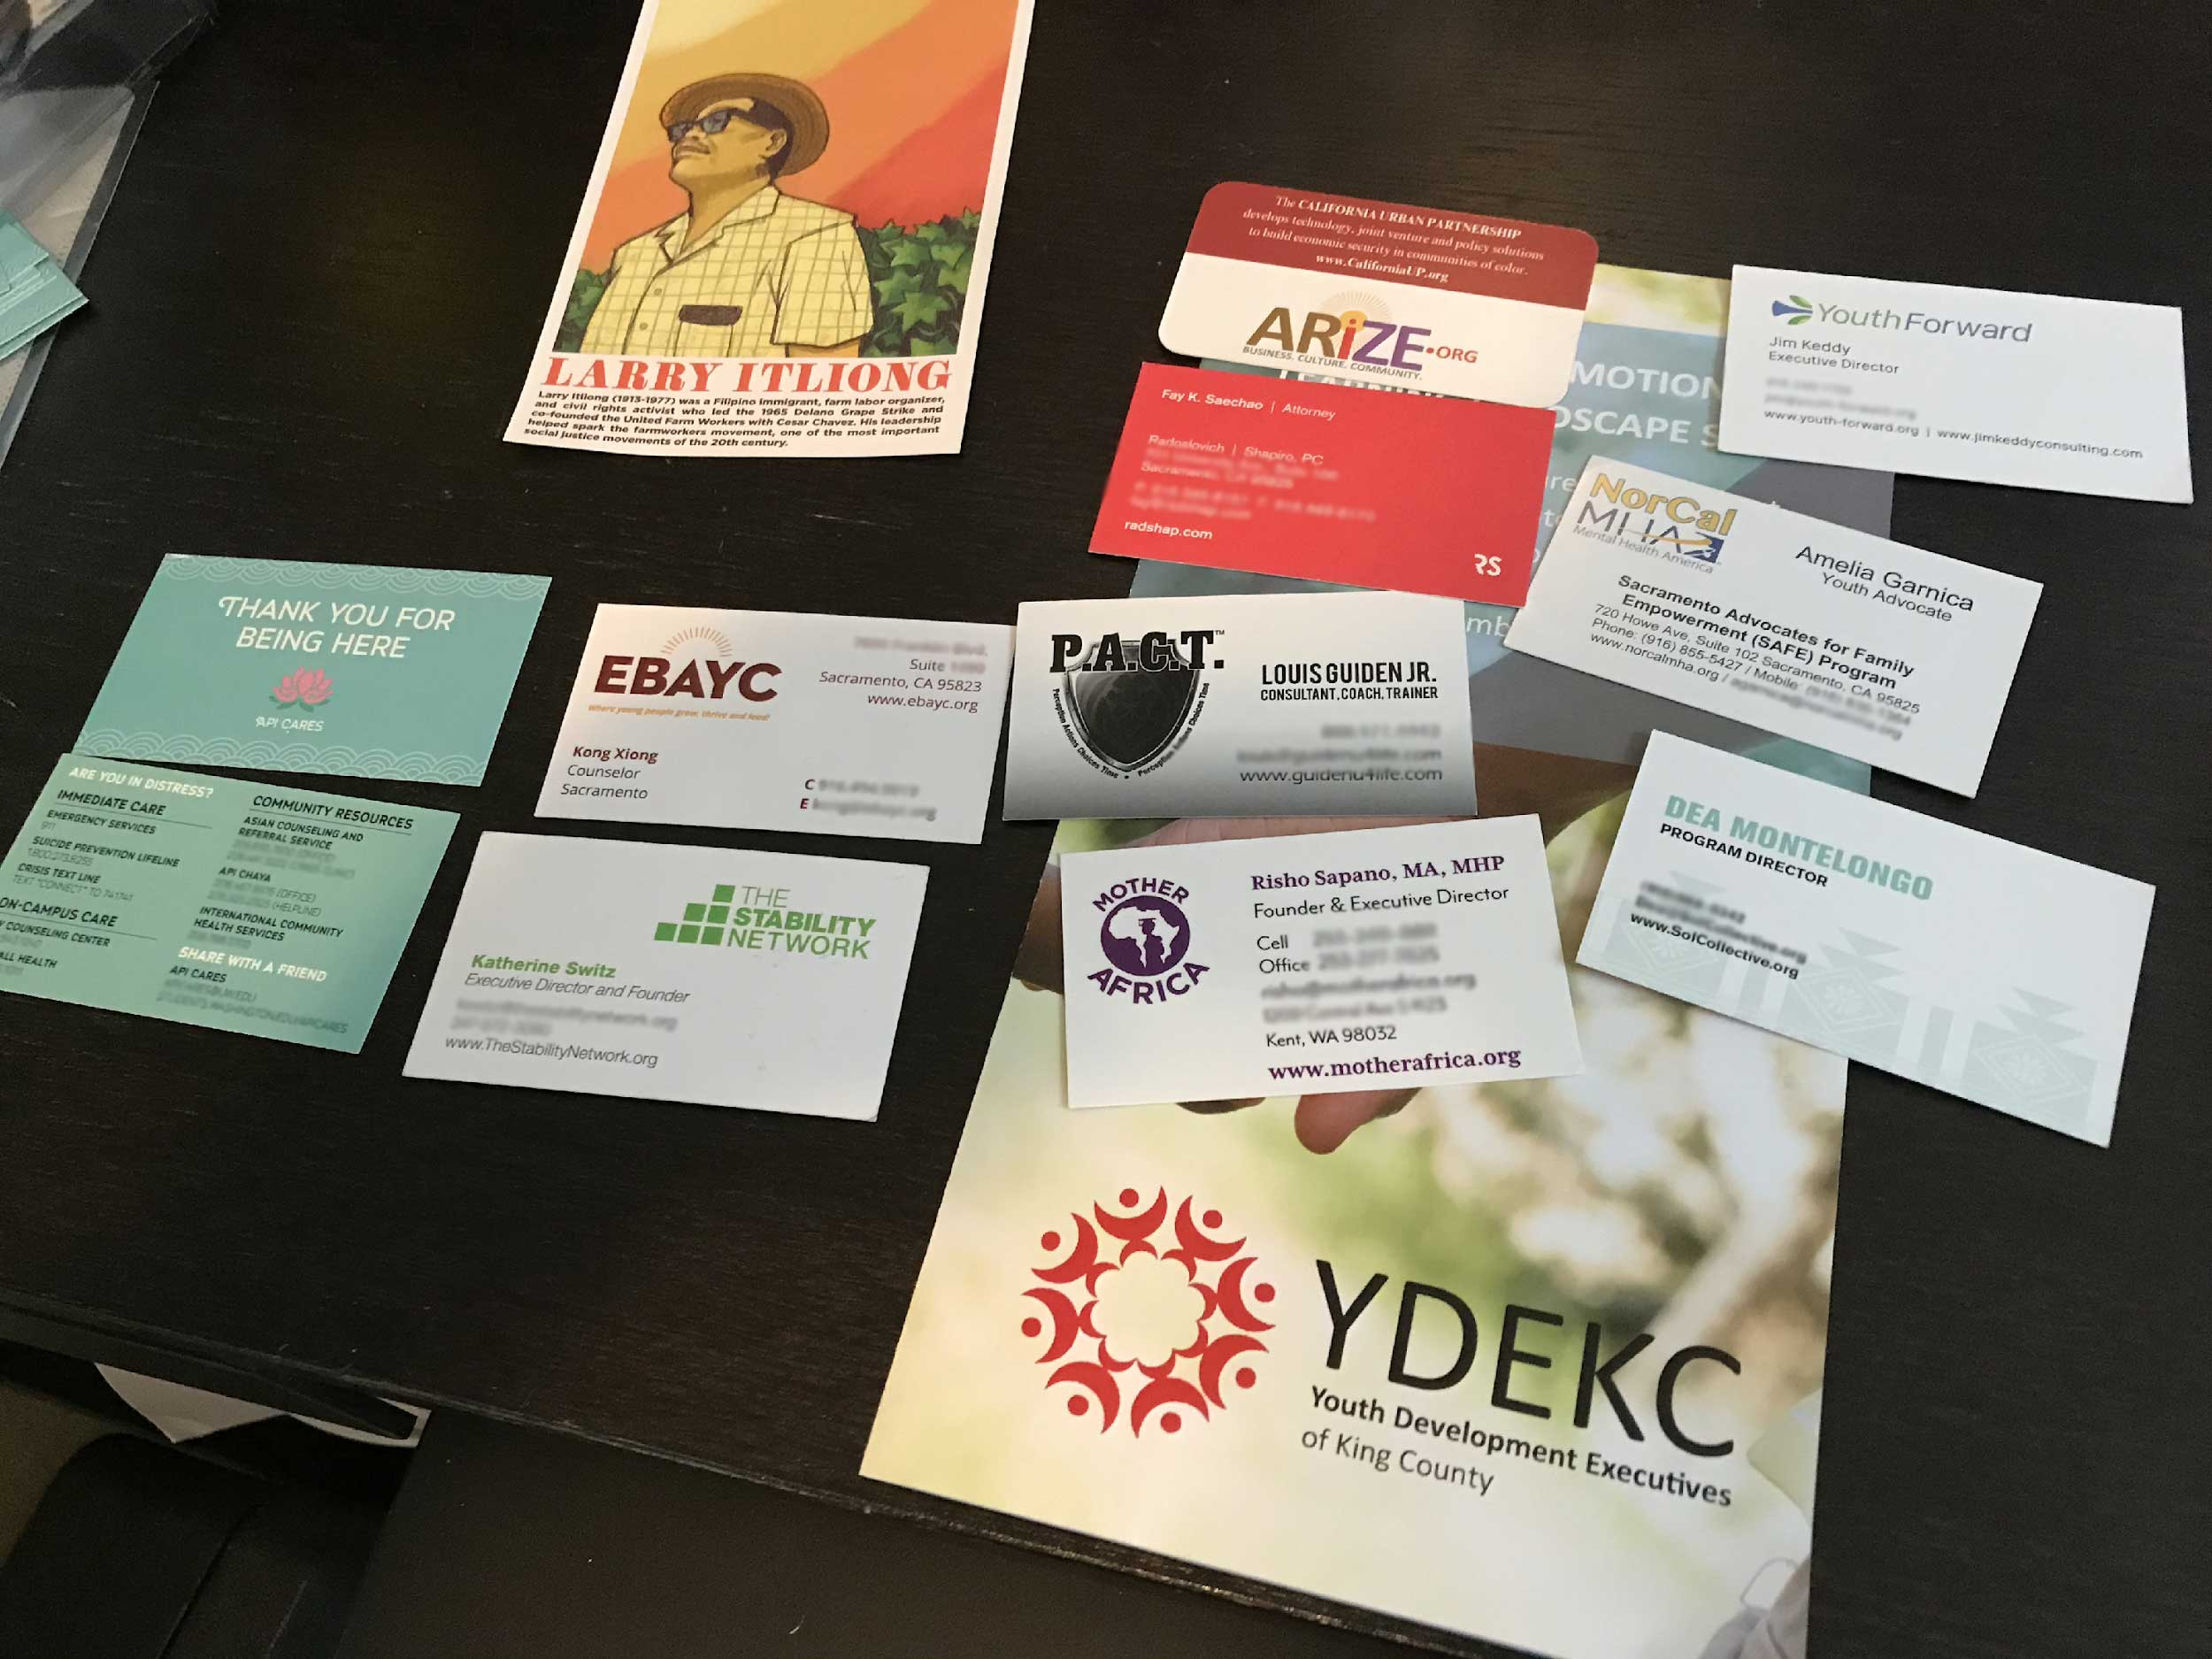 A collection of business cards collected at an event by Greg Garcia lay on a table